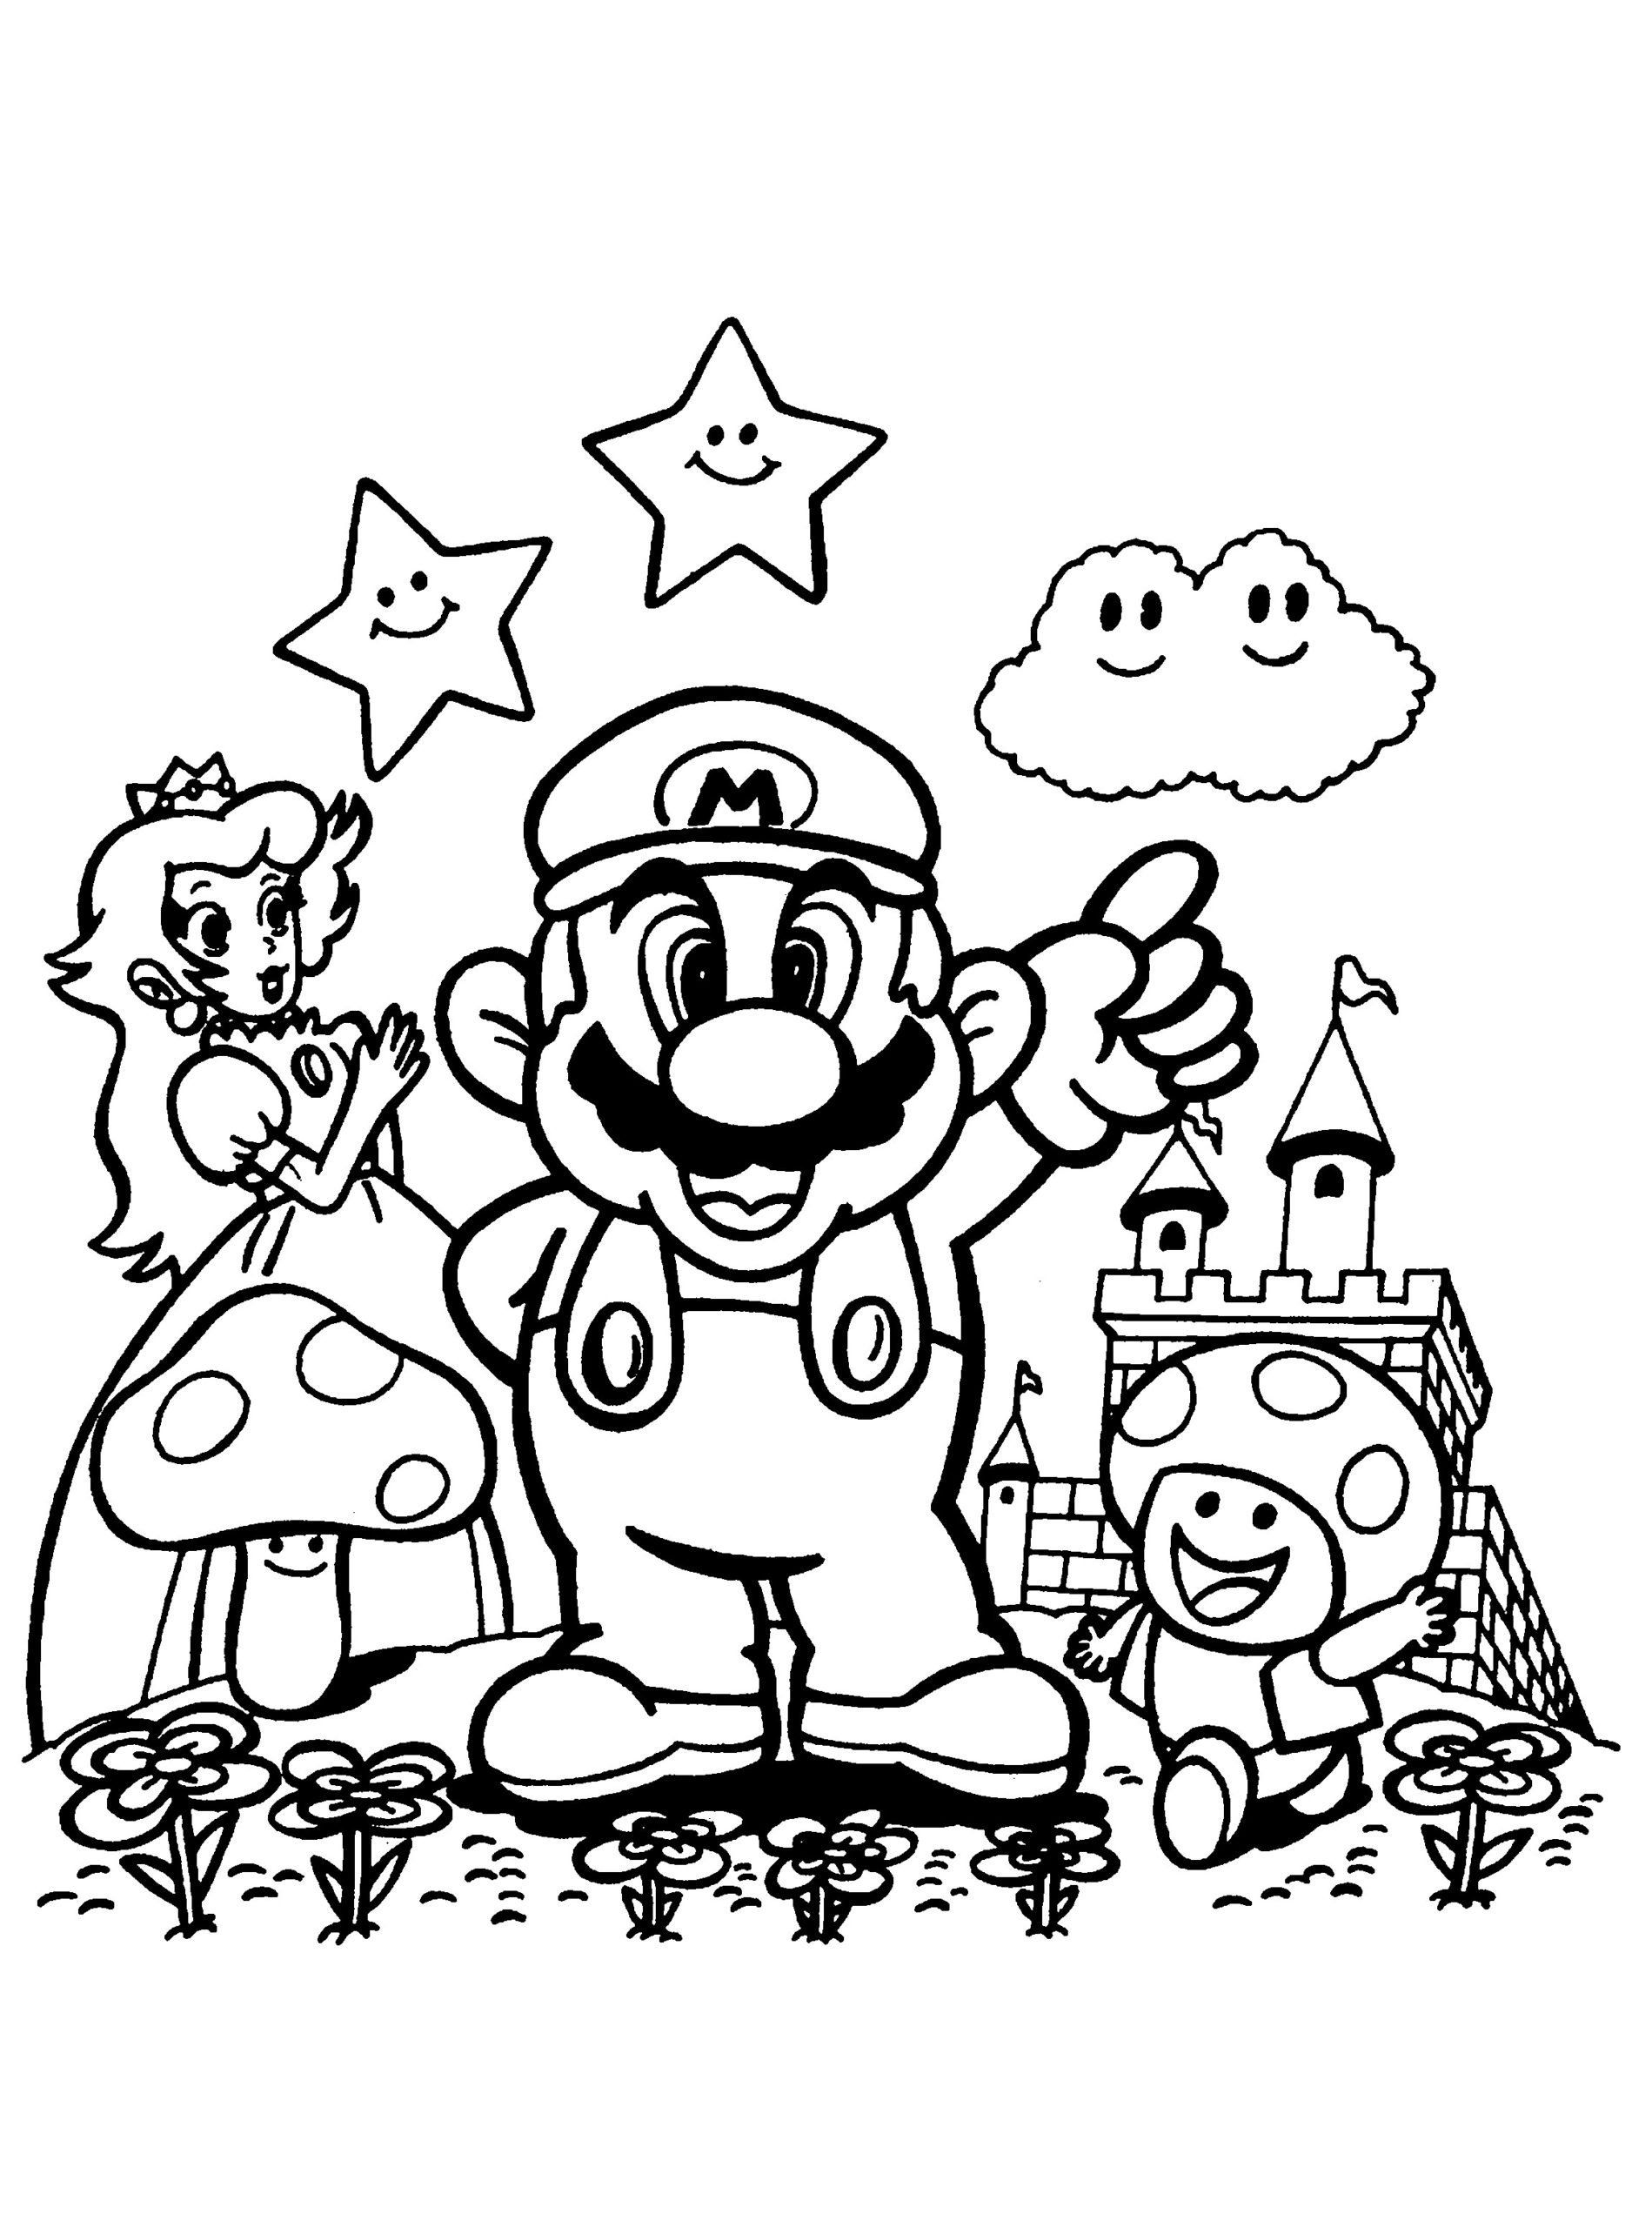 Mario Bros Coloring Books Coloring Page For Kids Top Preeminent Super Mario Brothers Super Mario Coloring Pages Mario Coloring Pages Coloring Books